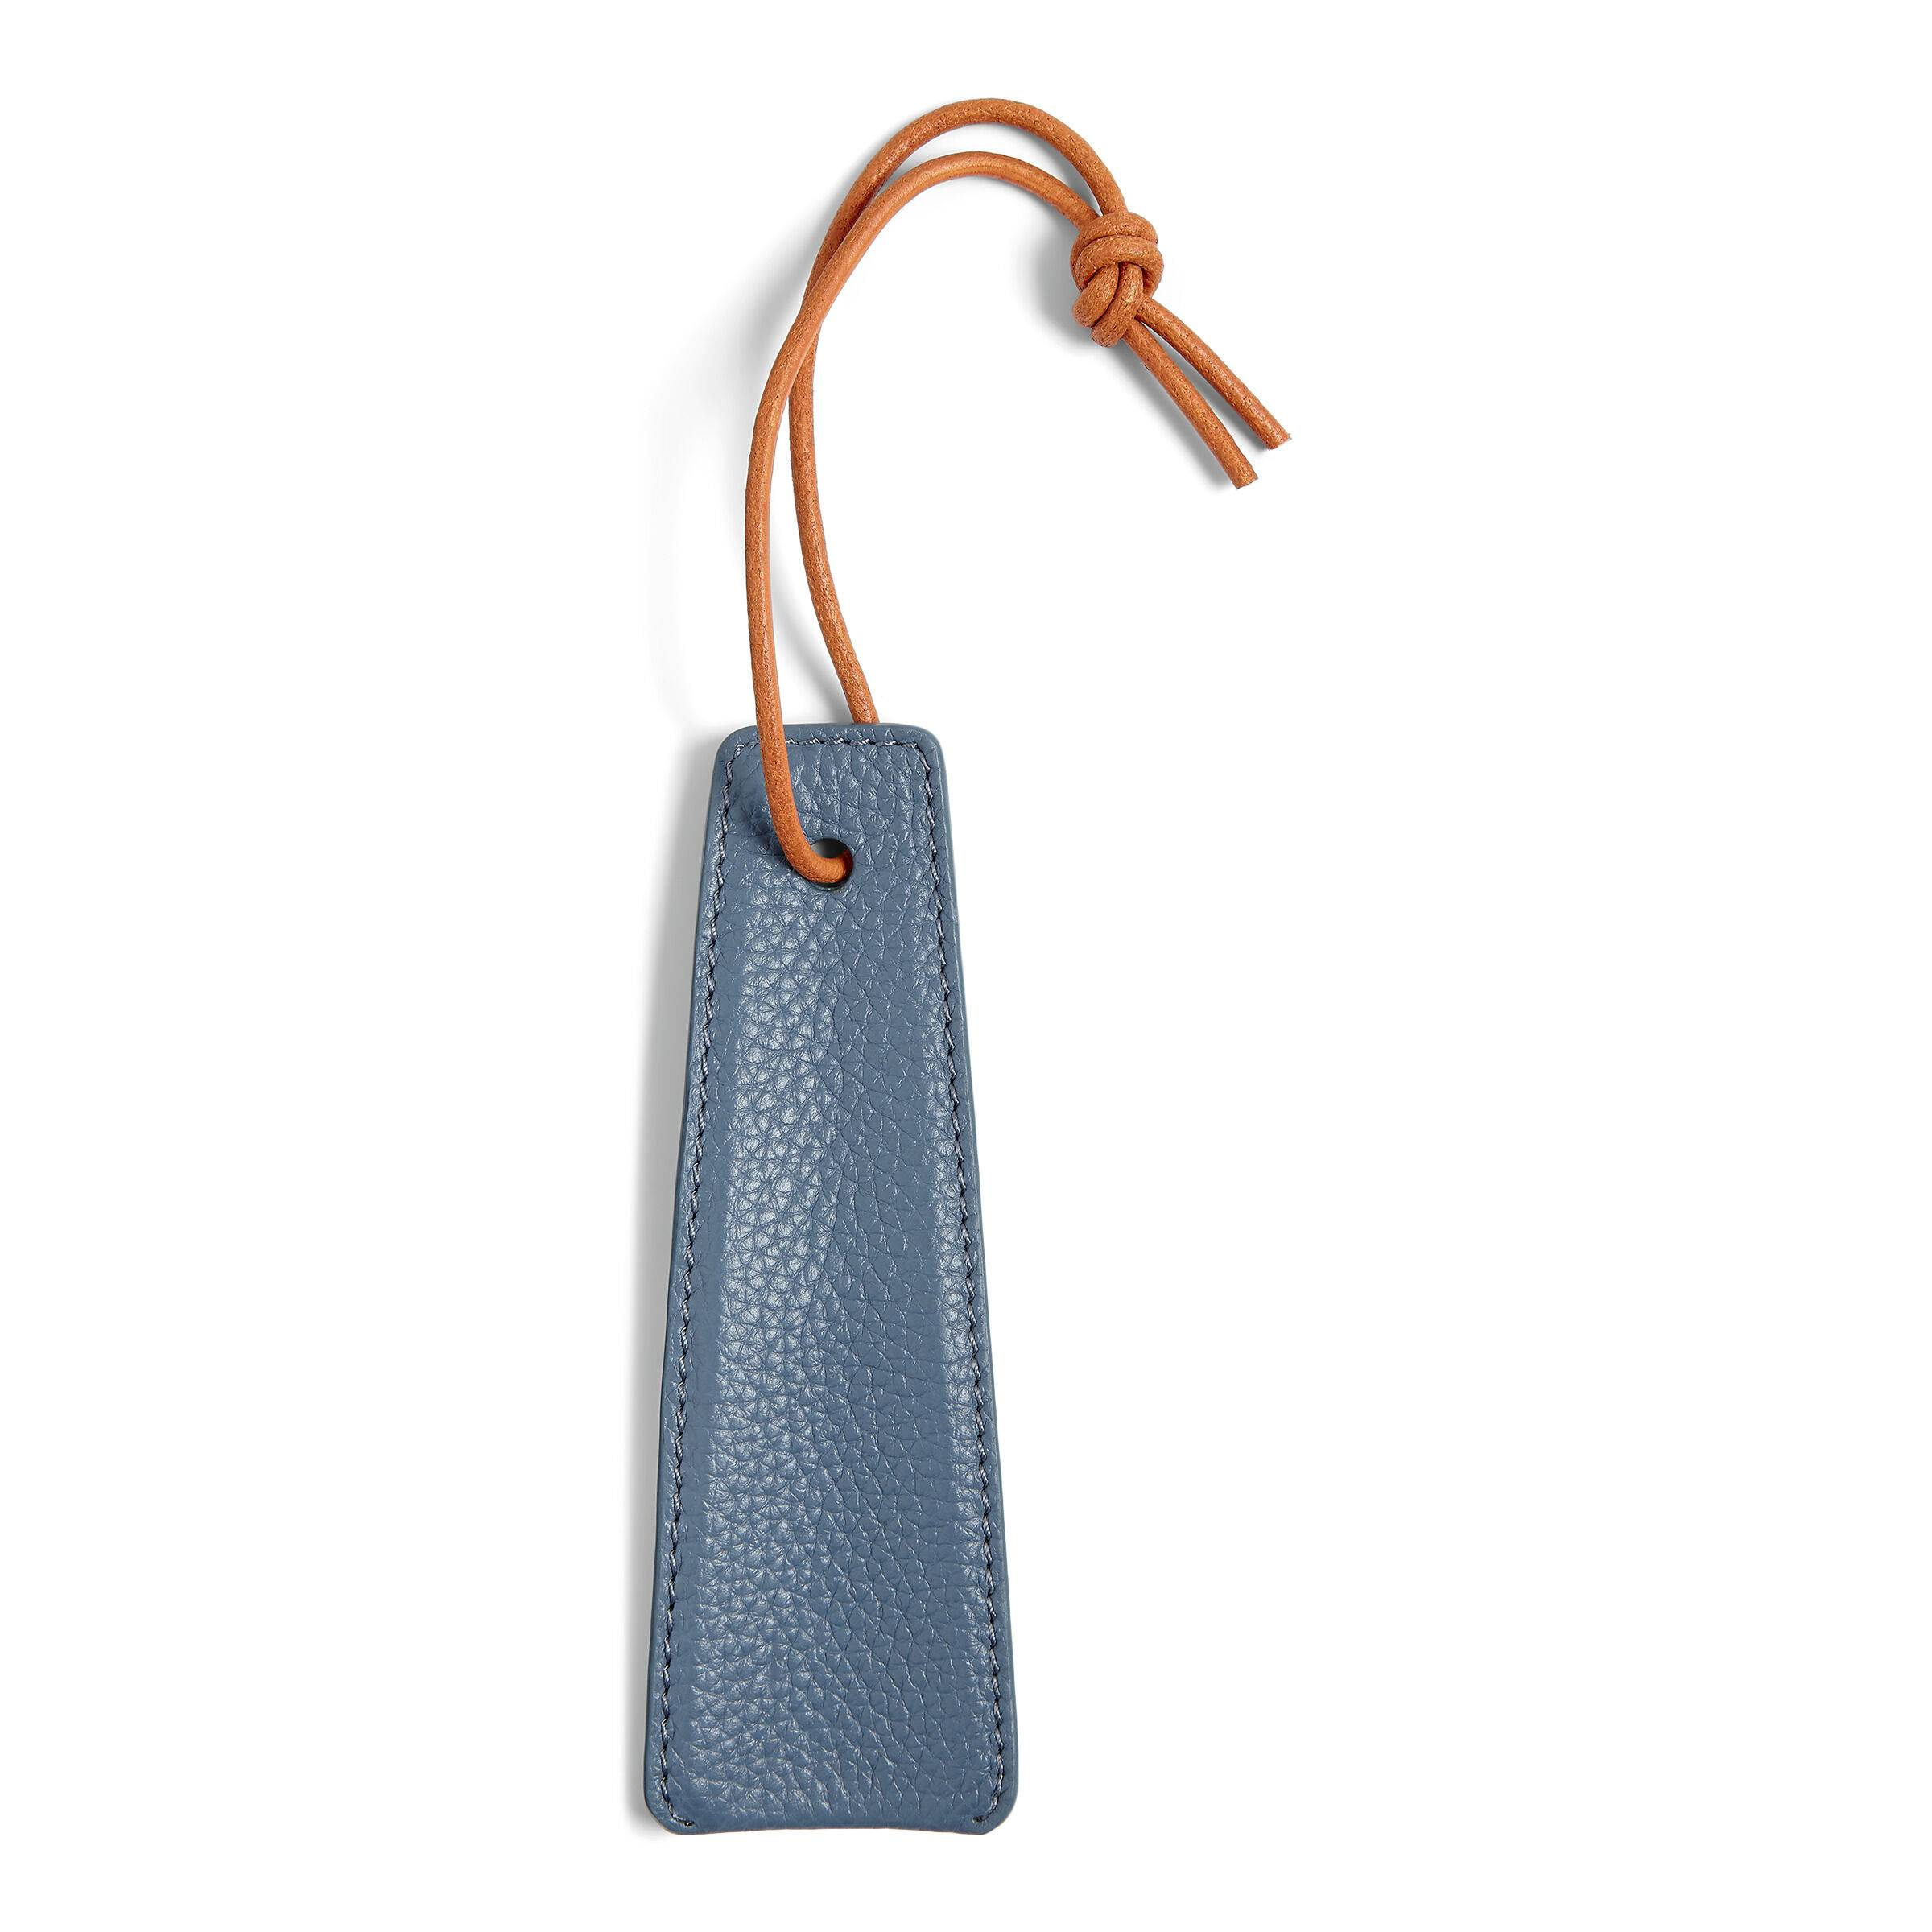 ECCO Leather Shoe Horn: One Size - Mirage